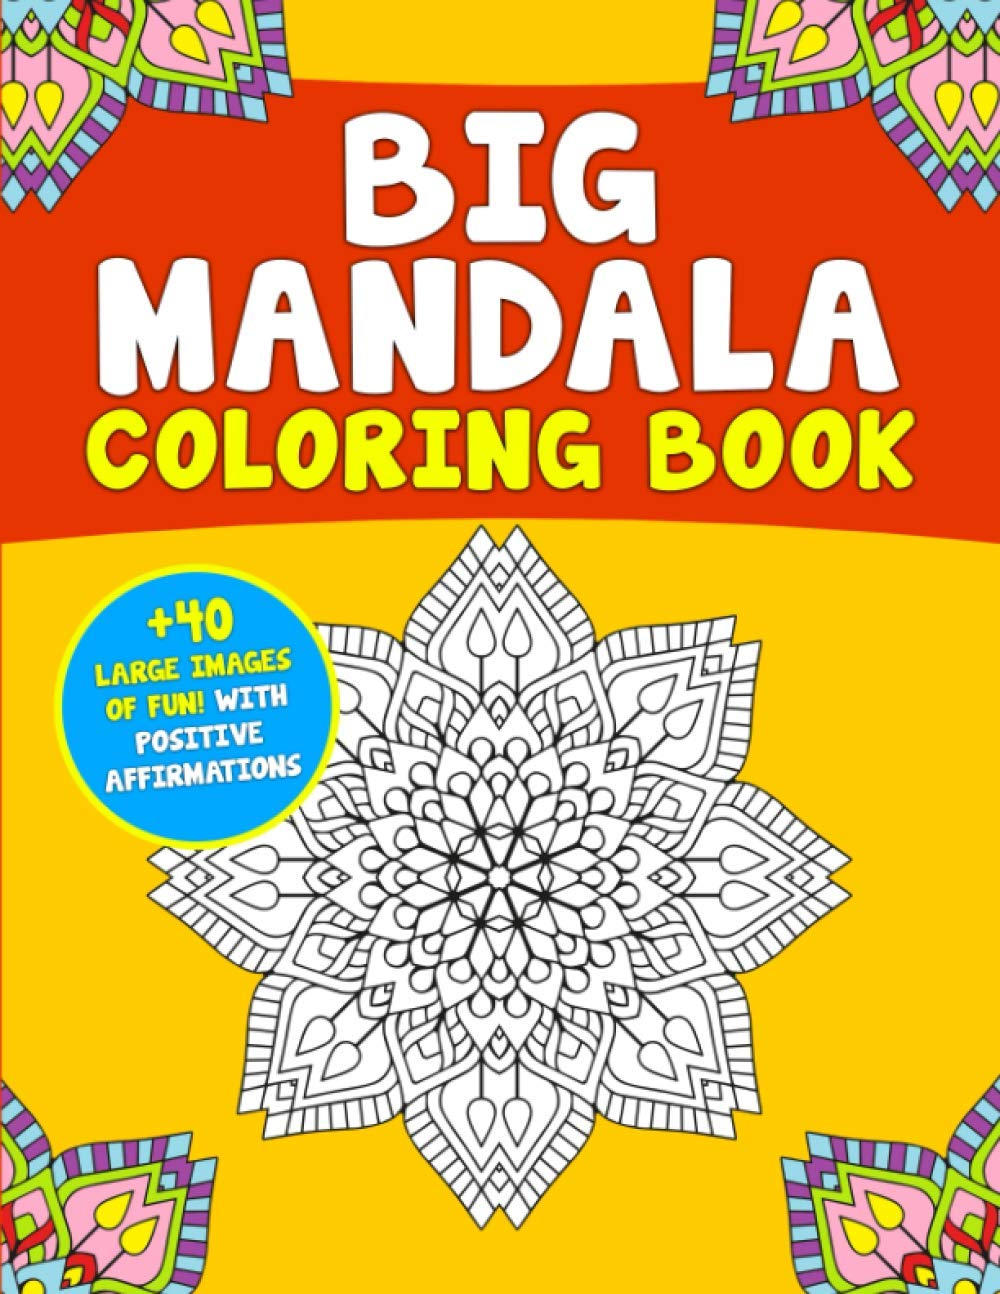 Big Mandala Coloring Book - Large: More than 40 Images of Fun! With Positive Affirmations, Easy, Big and Fun Mandalas to Color for Relaxation, a Stress Relief Book in Large Pages for Kids and Adults!